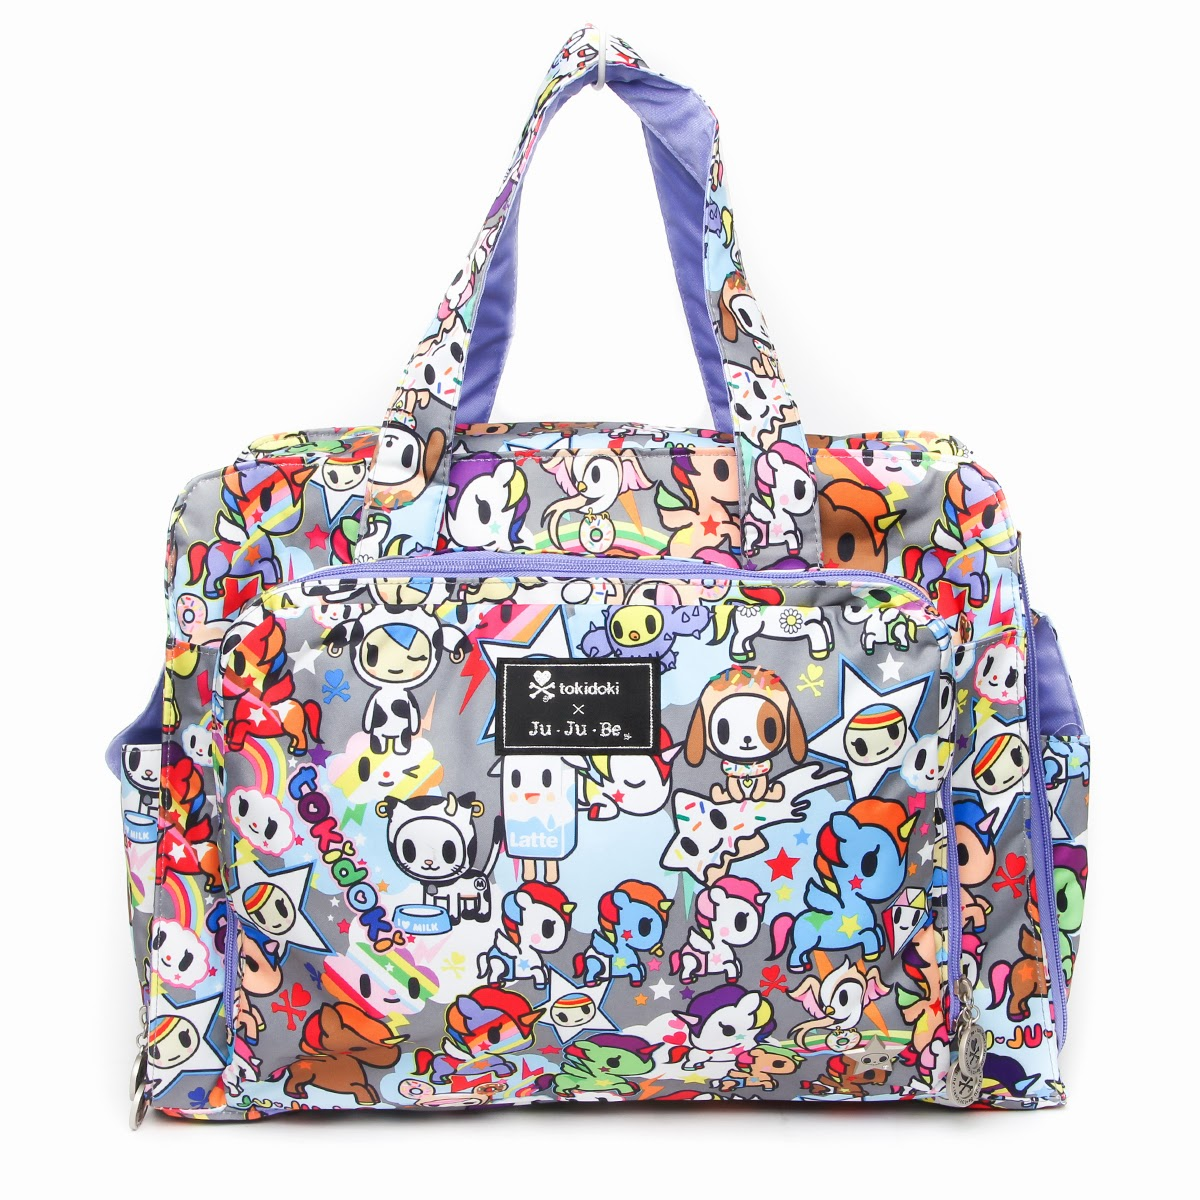 jujube diaper bag be prepared - toki unikiki